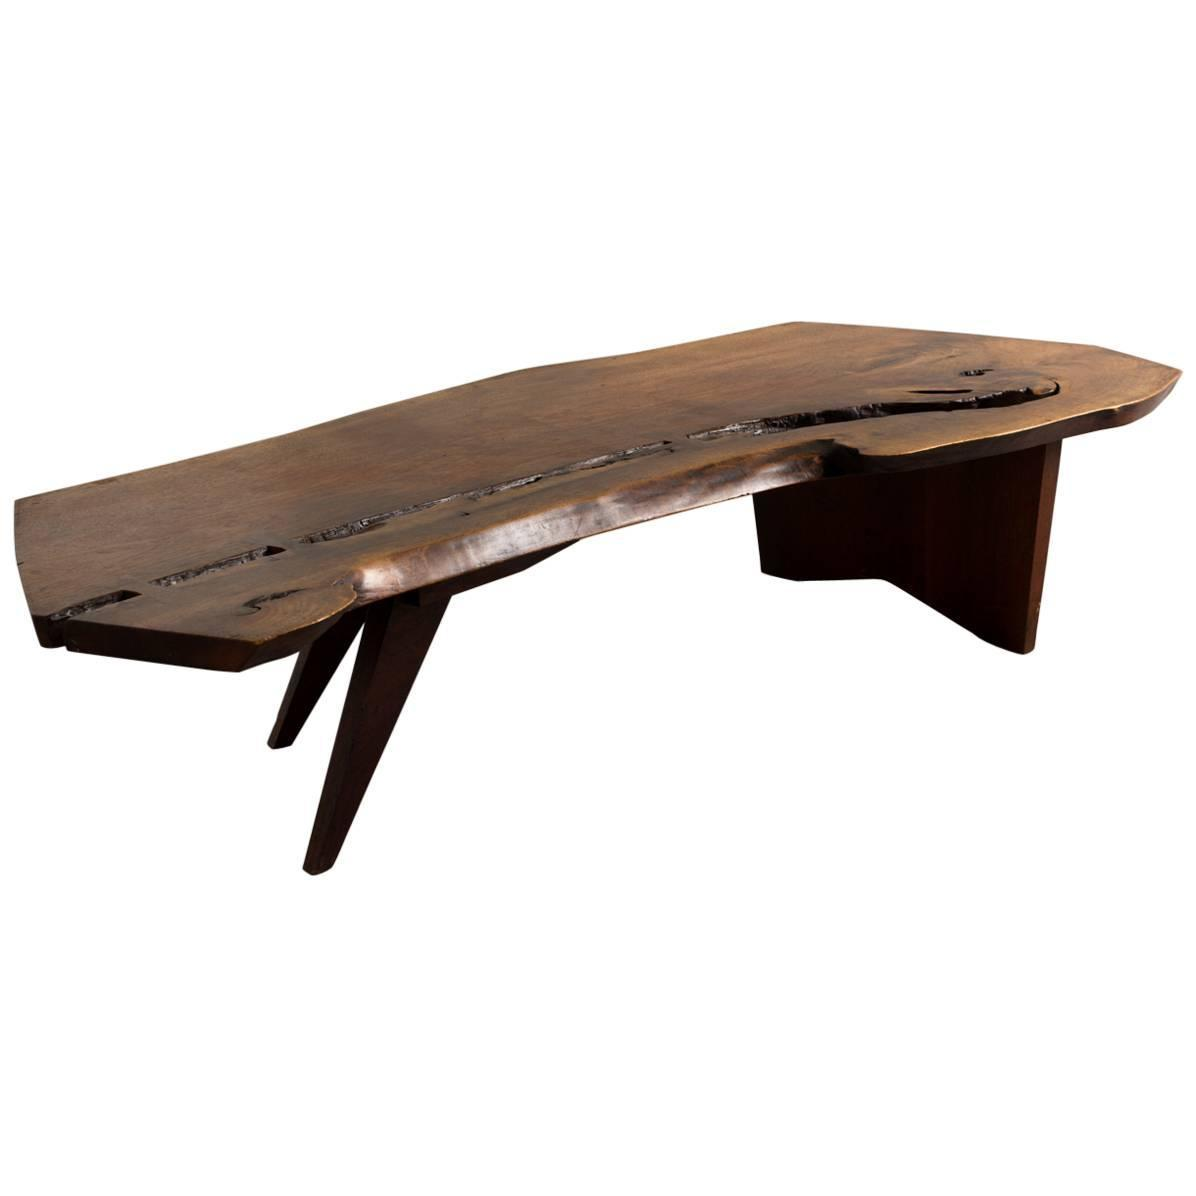 George Nakashima Coffee Table 1960s For Sale at 1stdibs